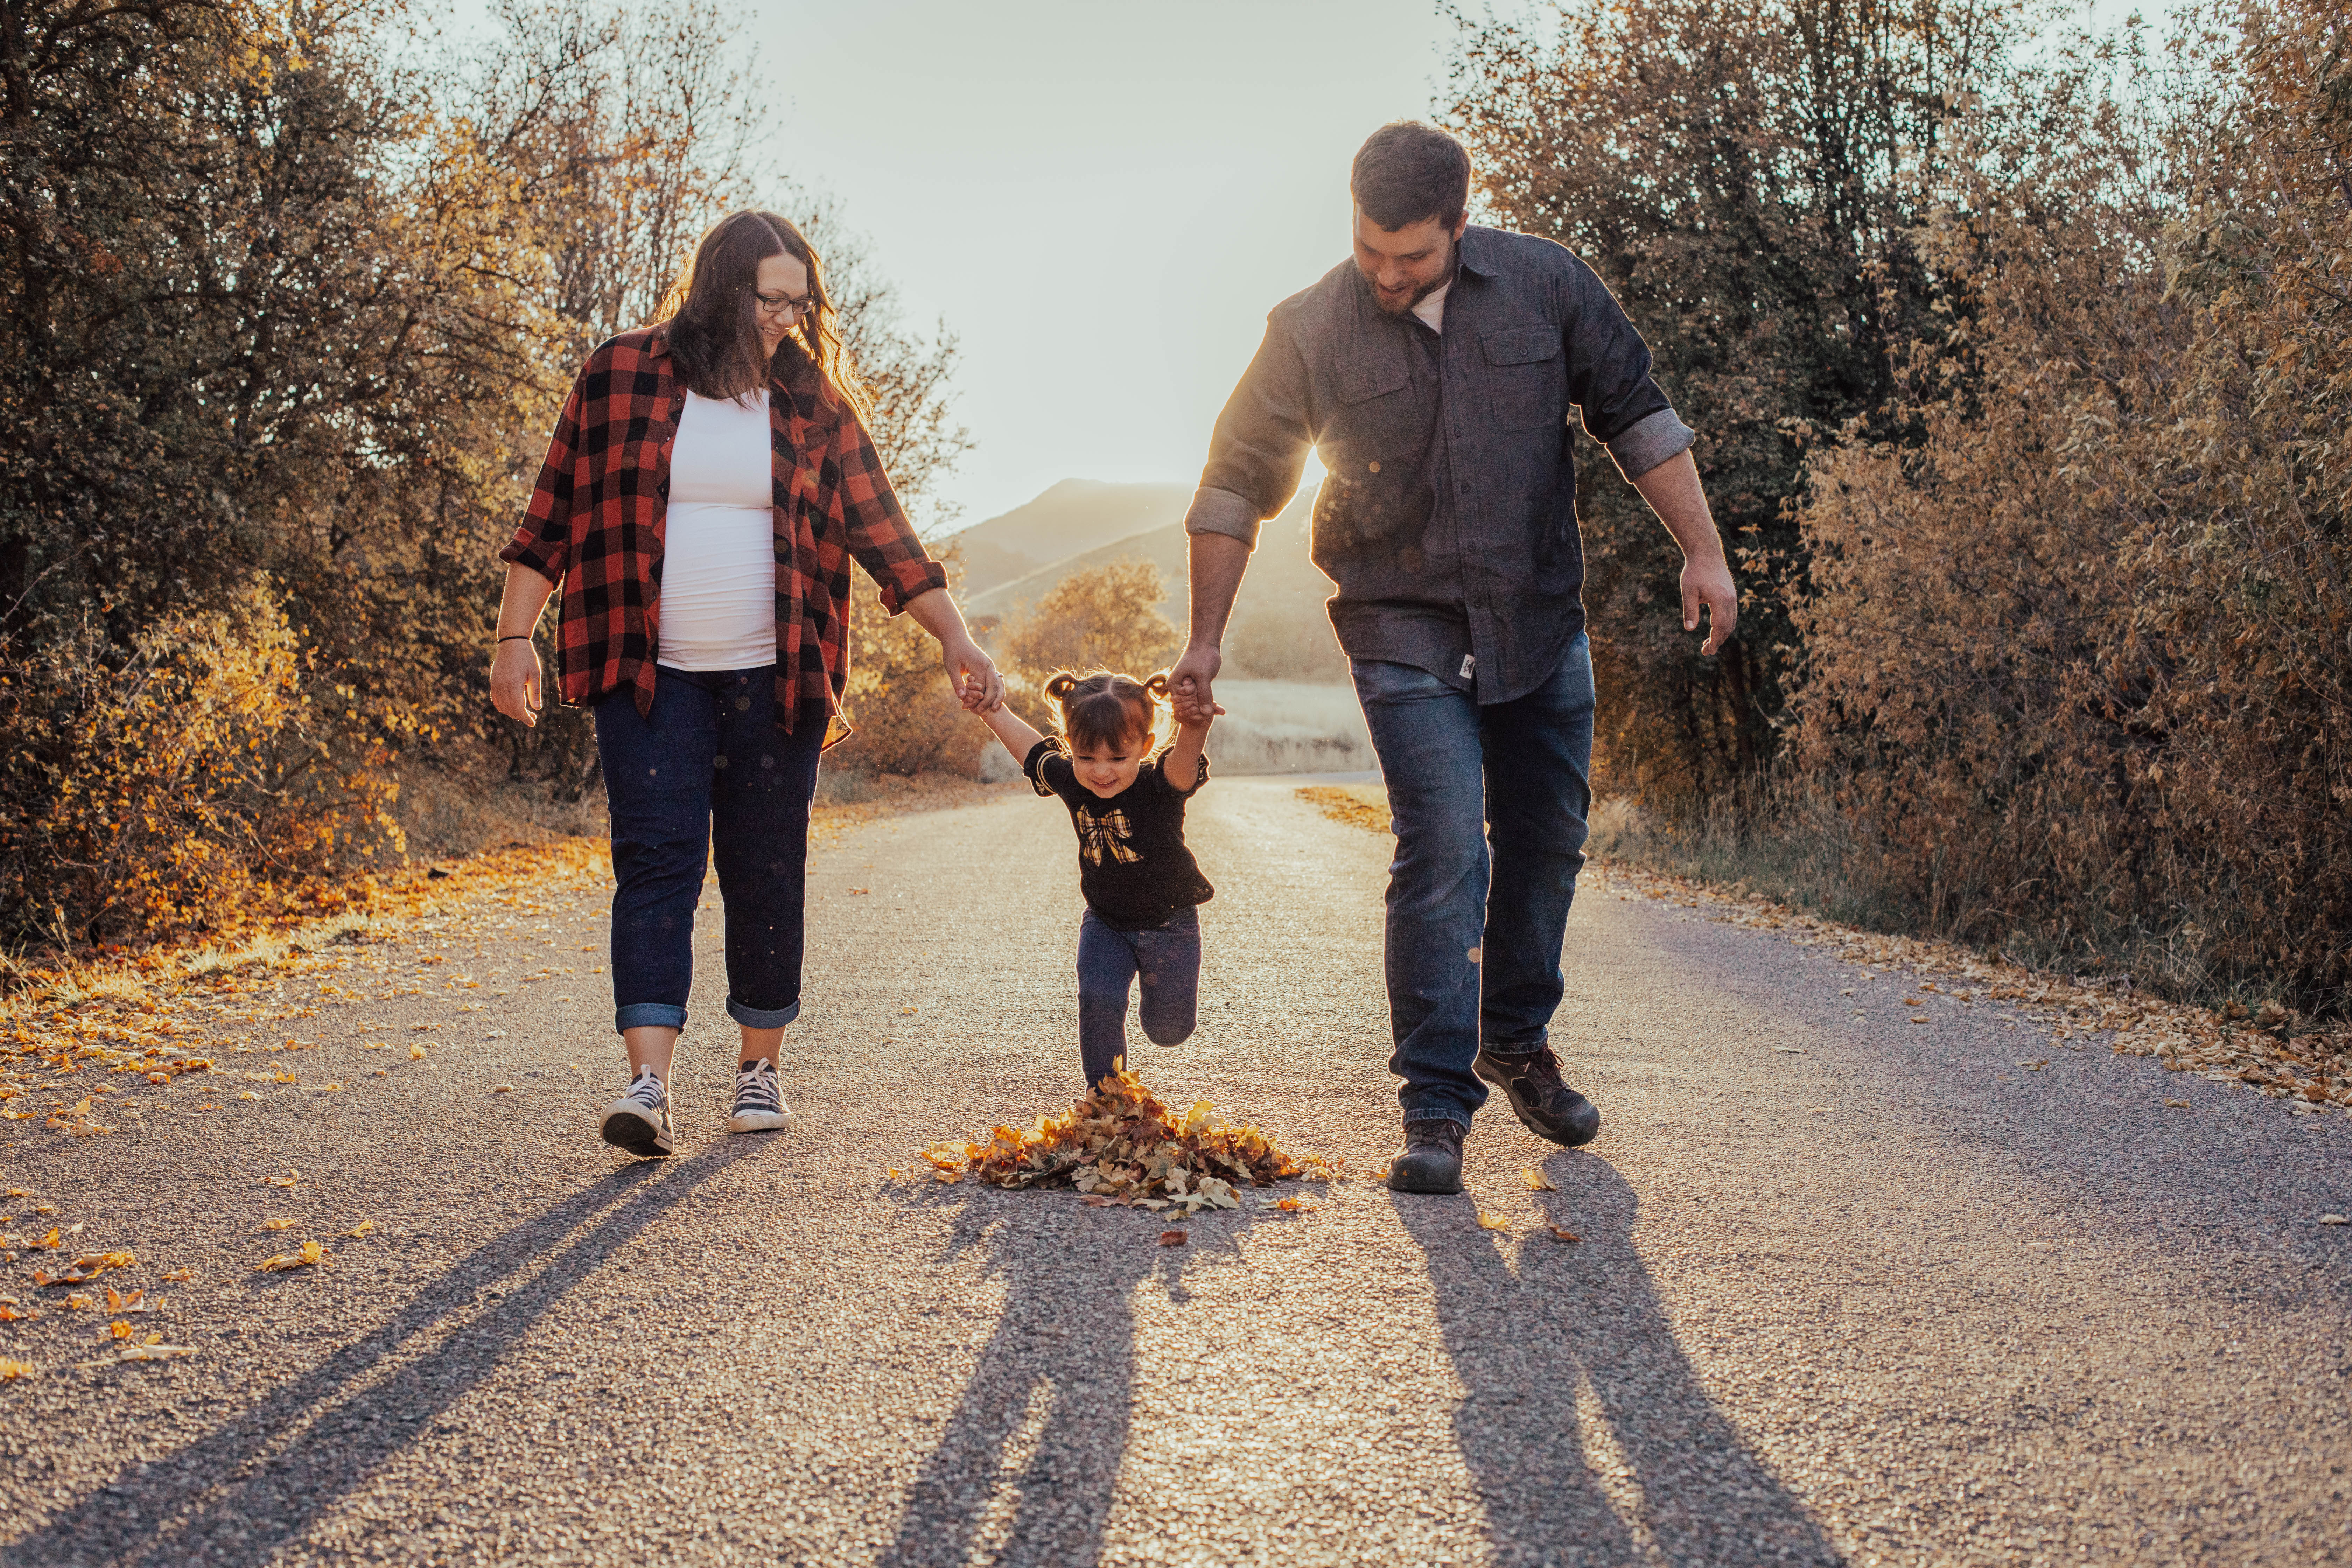 Strengthen Family ~ Build Character